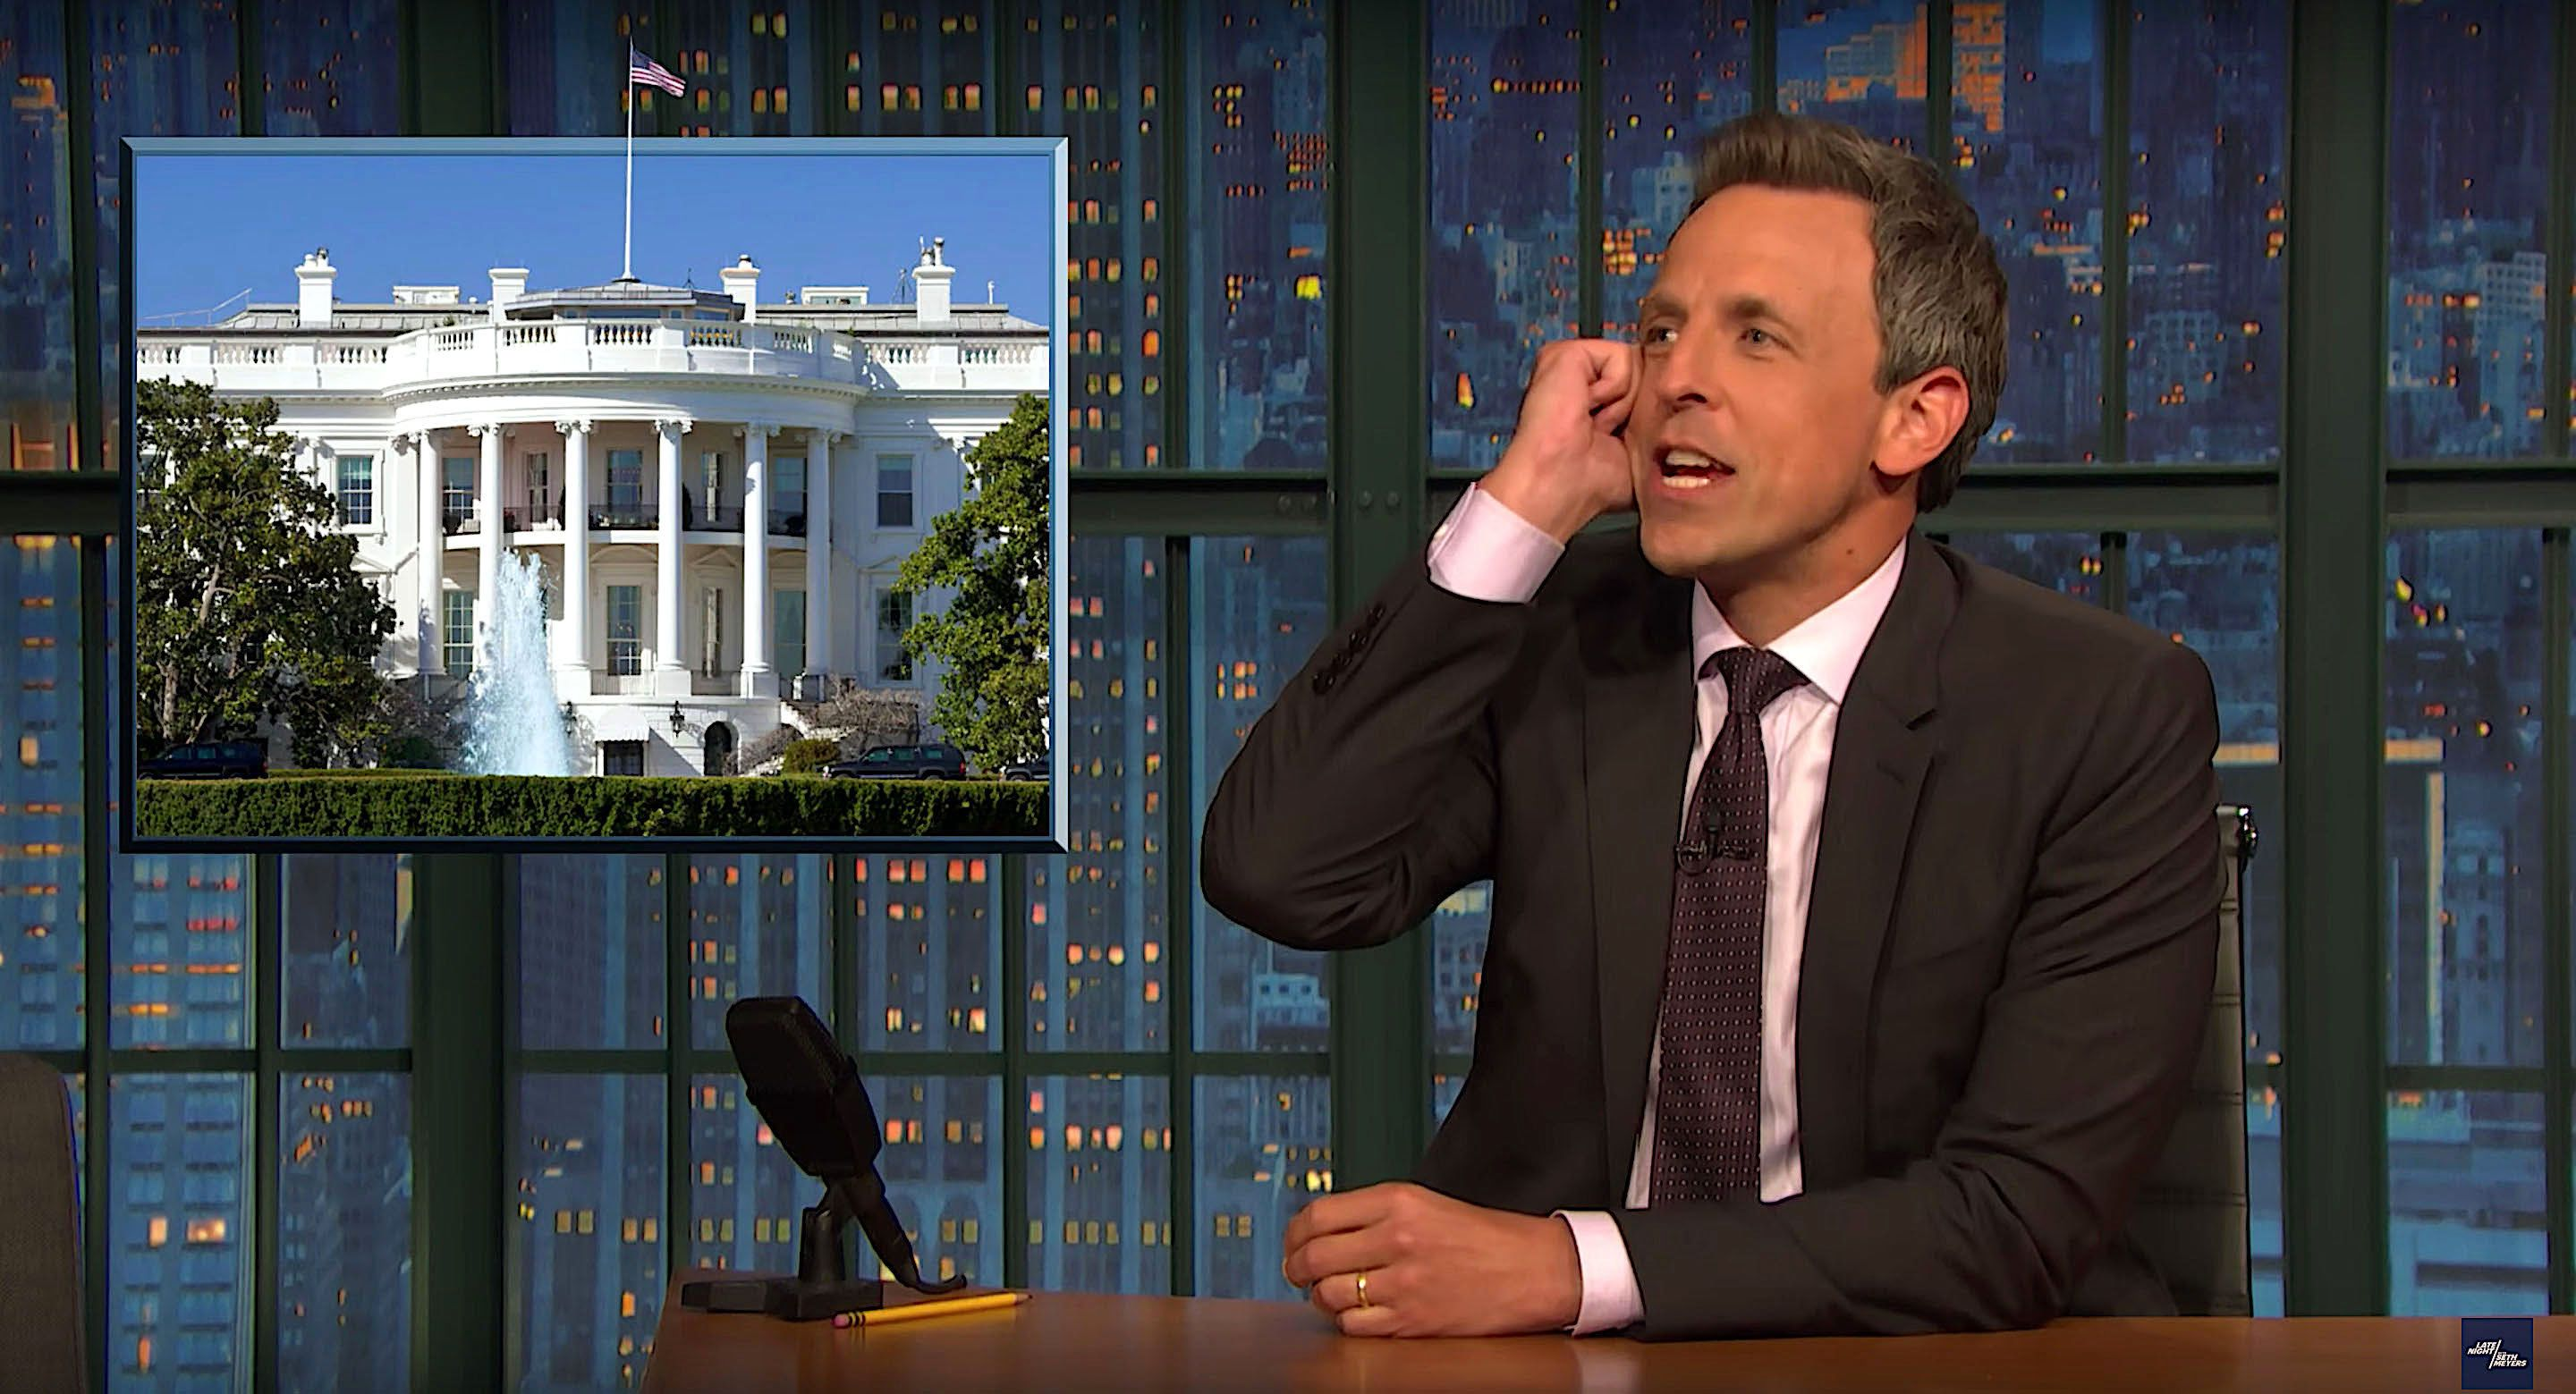 Seth Meyers Dissects 'One Of The Weirdest Aspects' Of Trump's Presidency